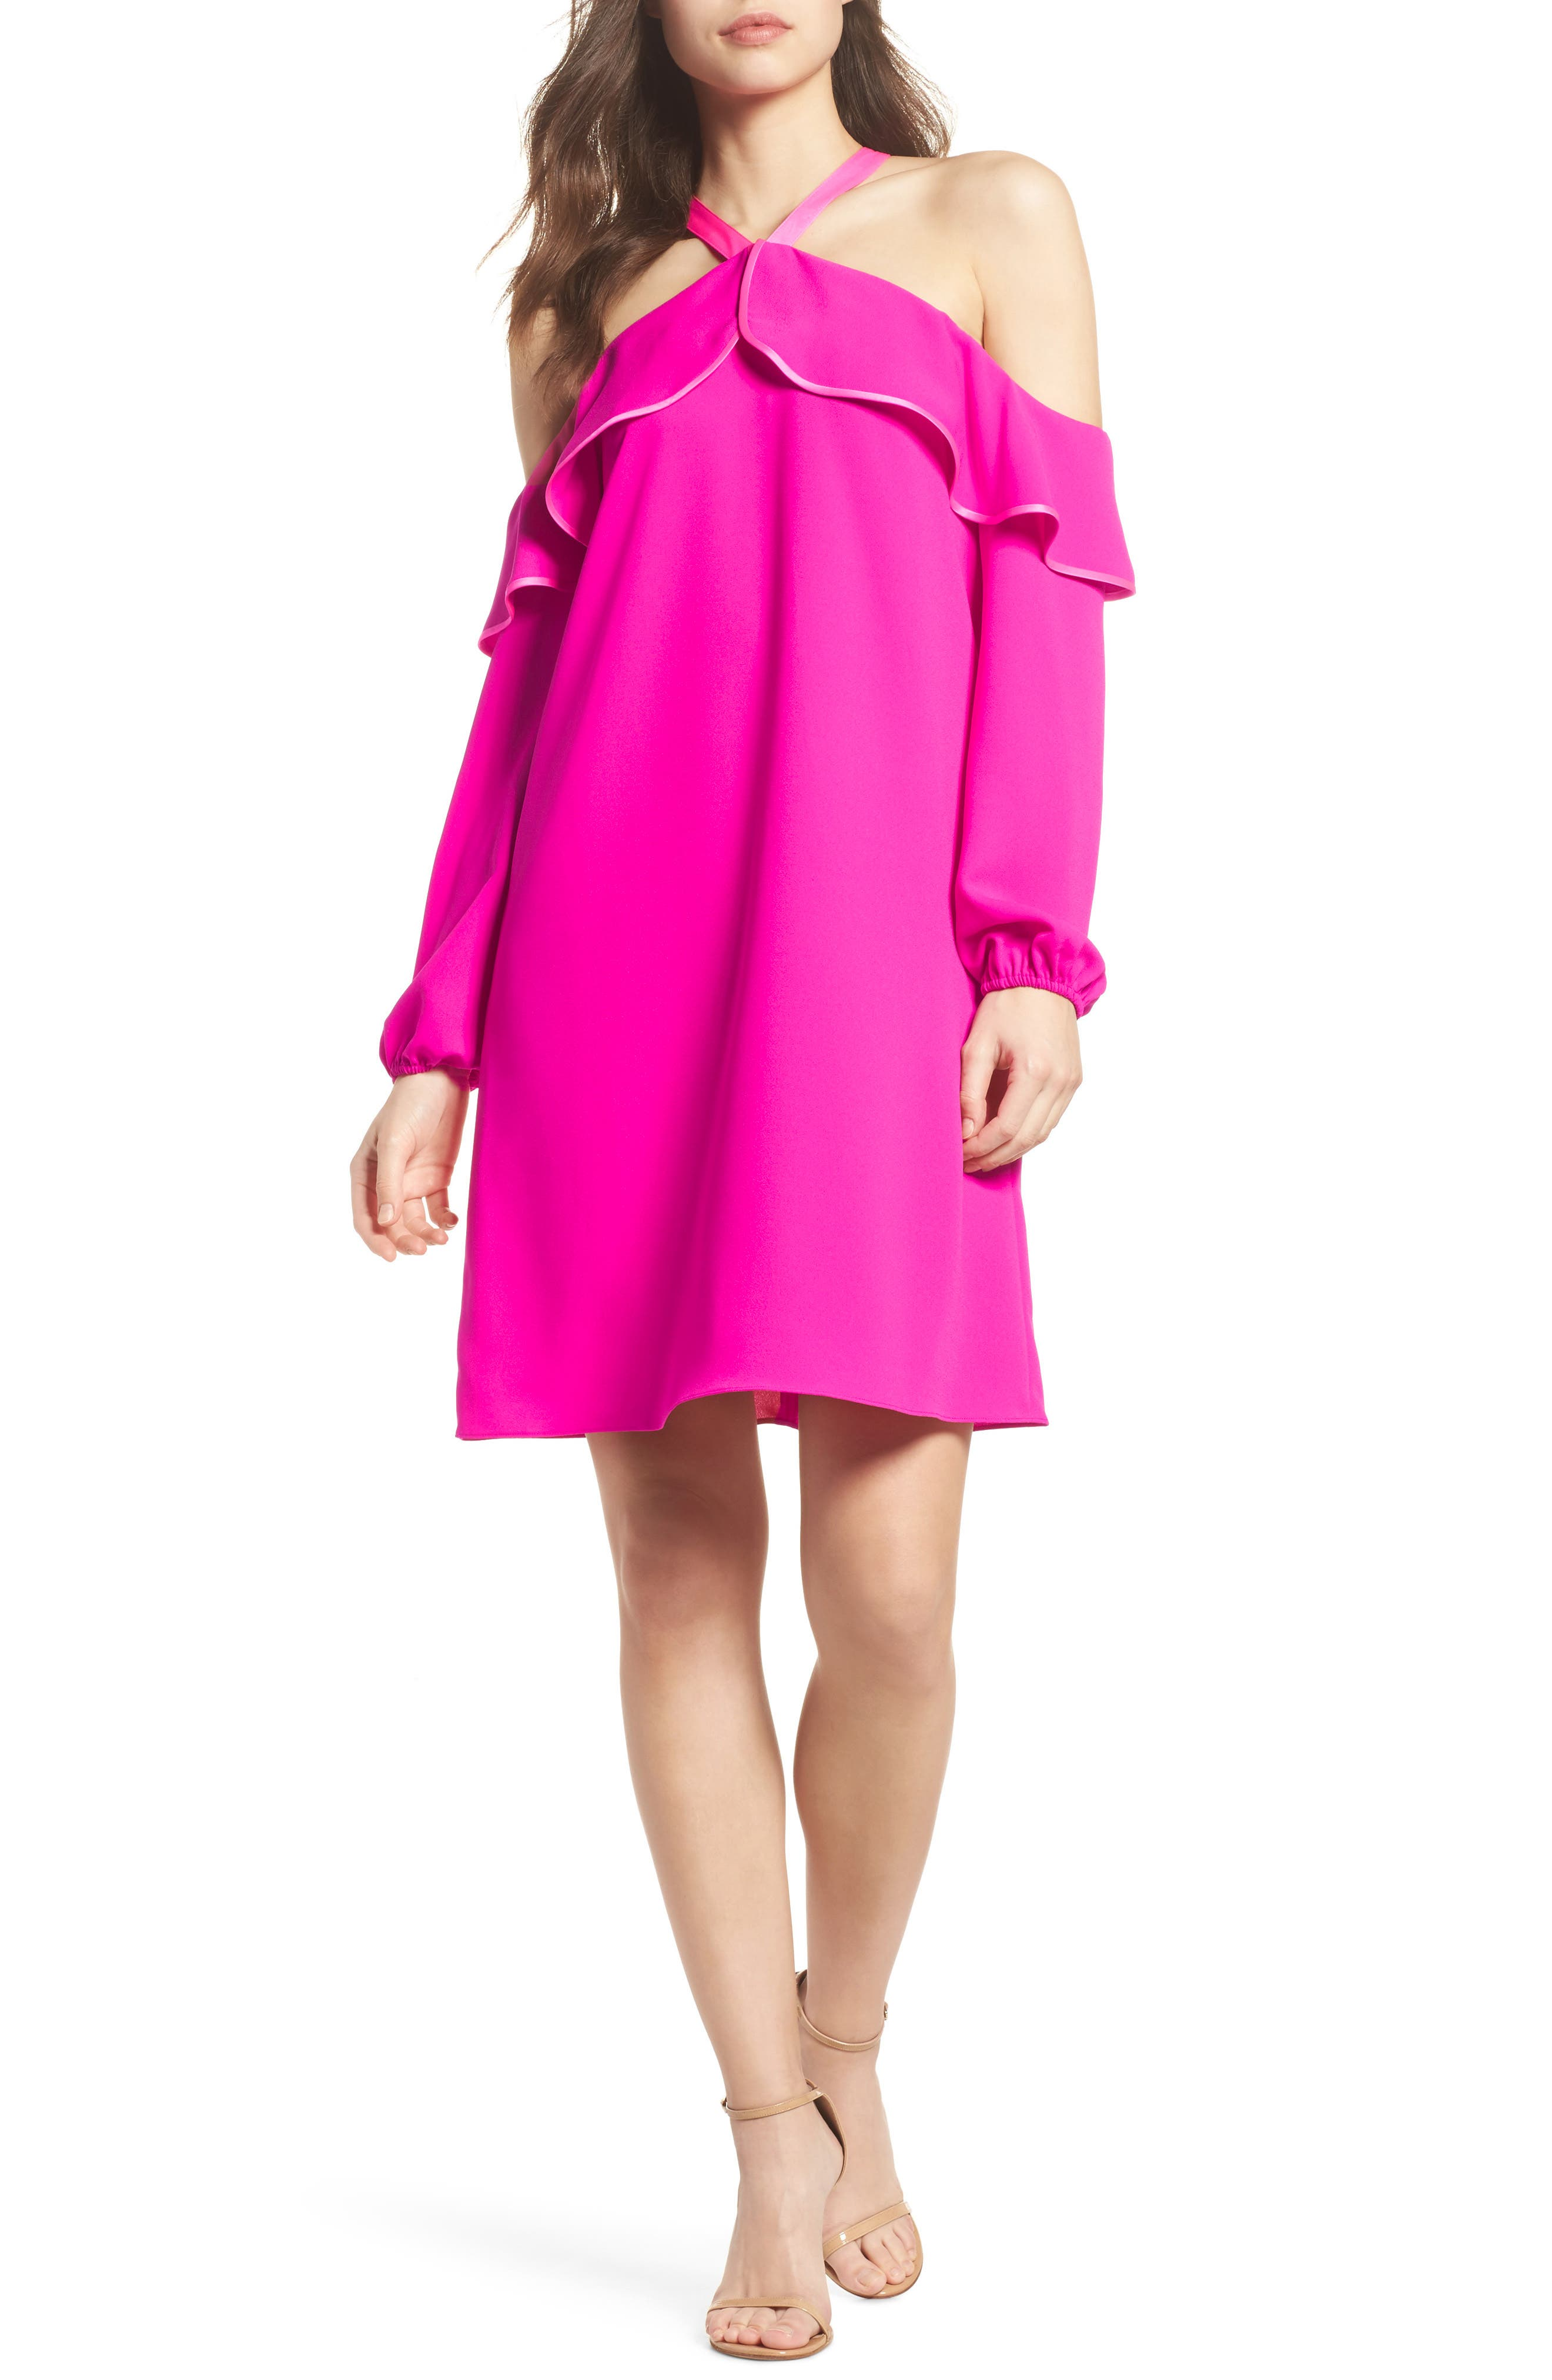 Lilly Pulitzer Abrielle Ruffle A-Line Dress